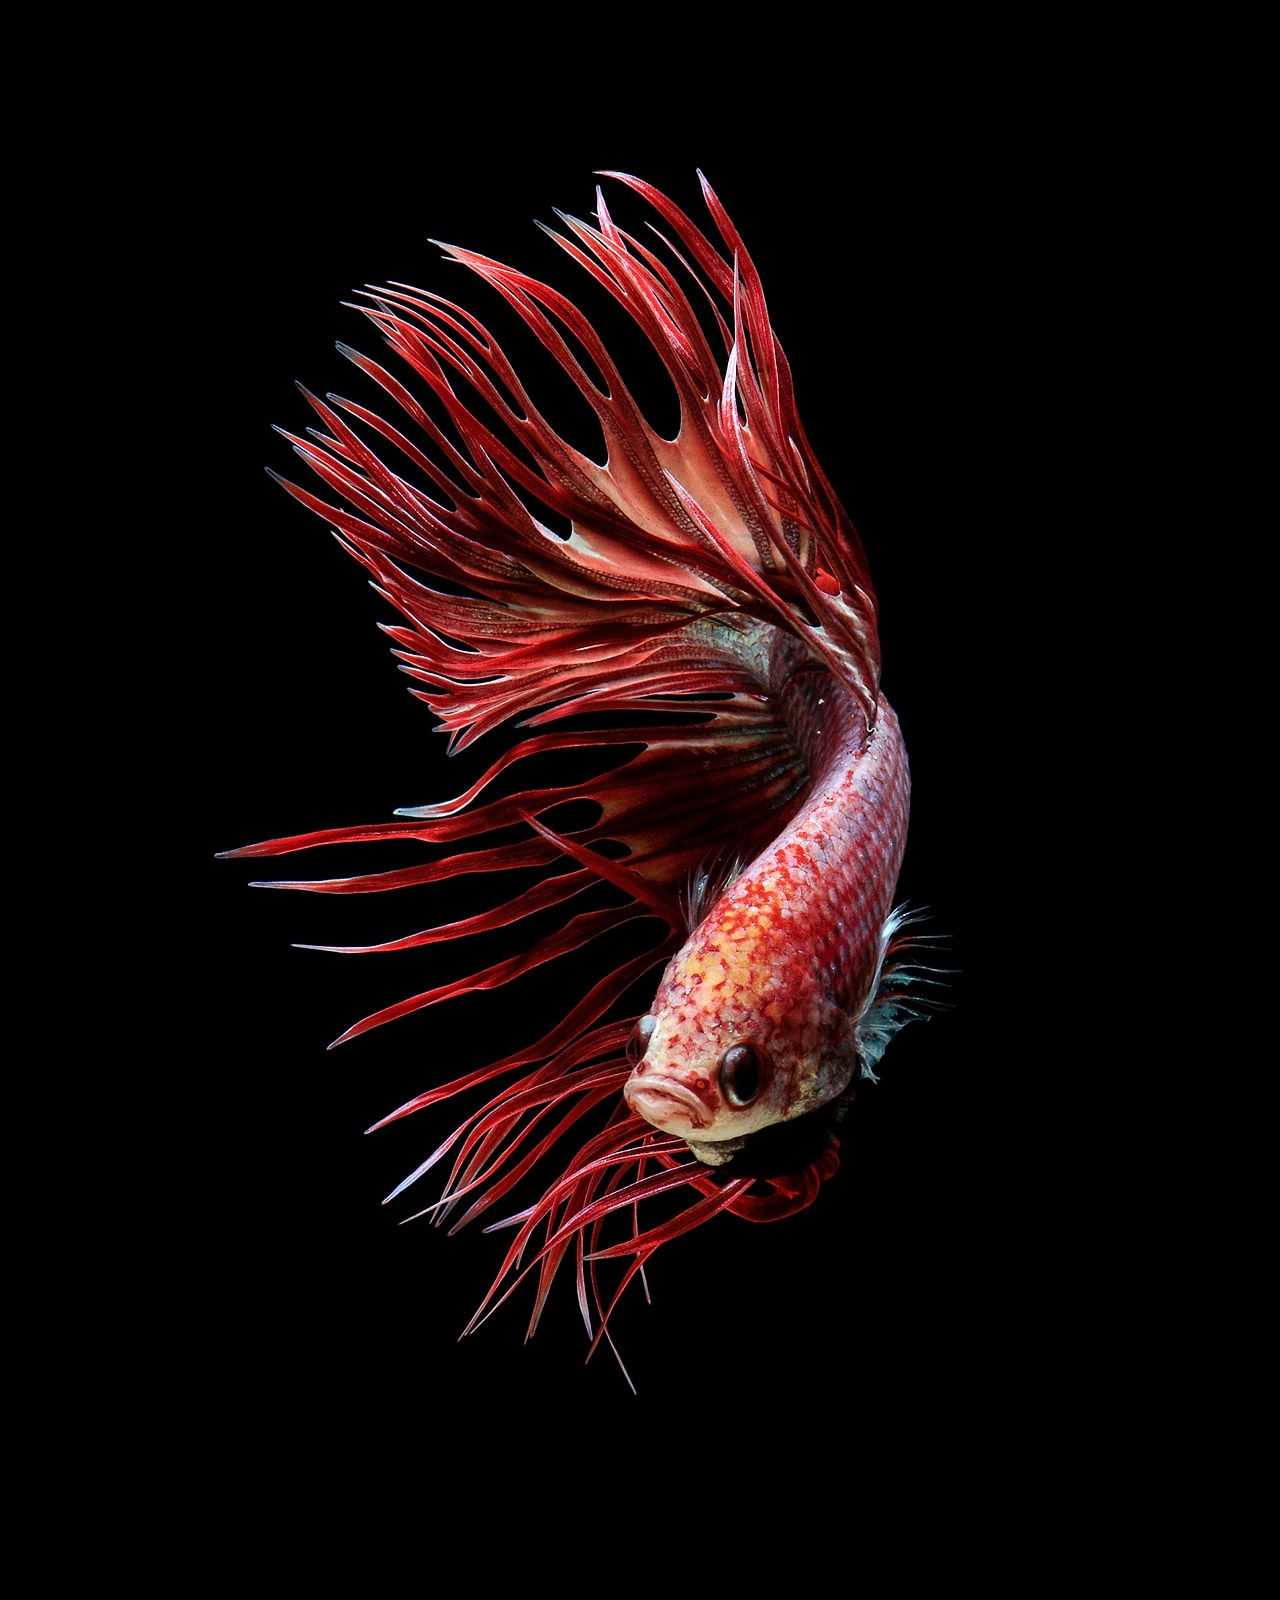 Wallpaper iphone cupang - Red Crowntail Betta Fish Siamese Fighting Fish On Black Background